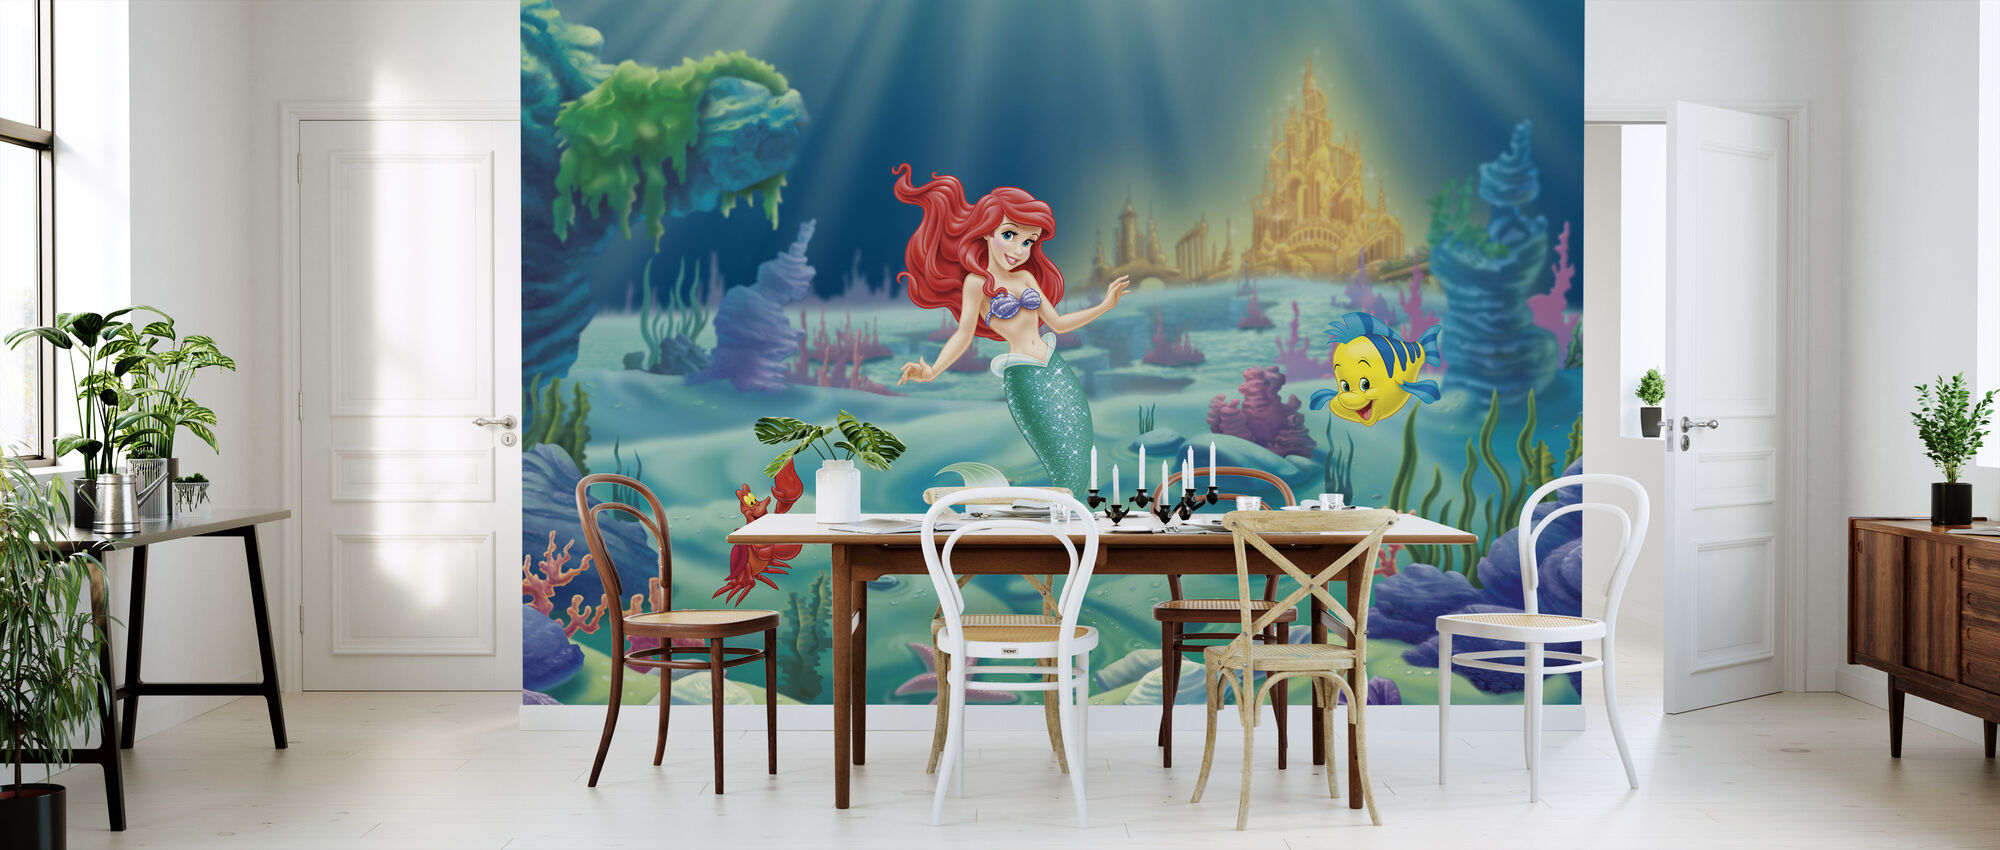 Disney Princess - Ariel - Tapetti - Keittiö